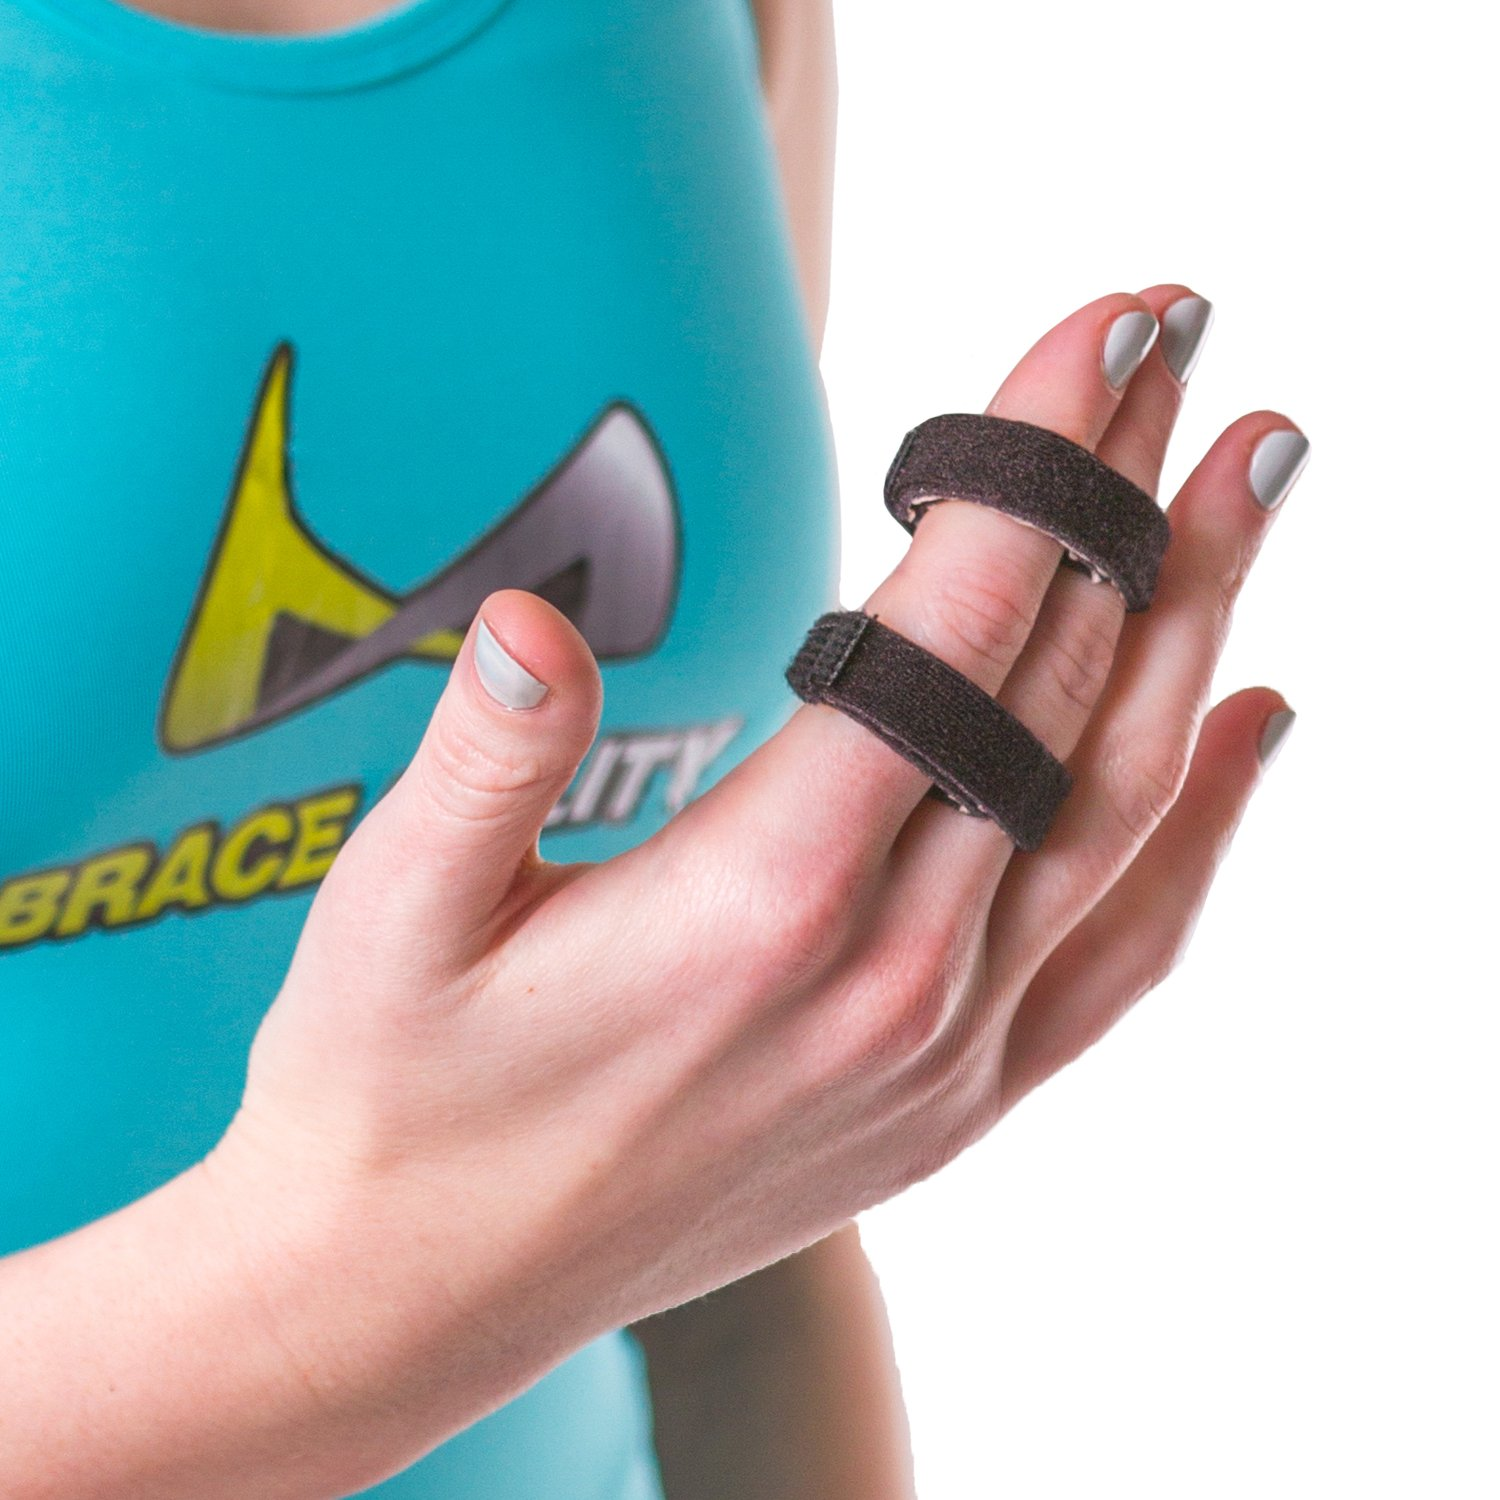 BraceAbility Buddy Tape Finger Splint Wraps   Non-Slip Loop Straps for Treating / Taping a Jammed Finger, Sprained Knuckle, Swollen or Dislocated Joint, Fractured Pinky (Pack of 3)